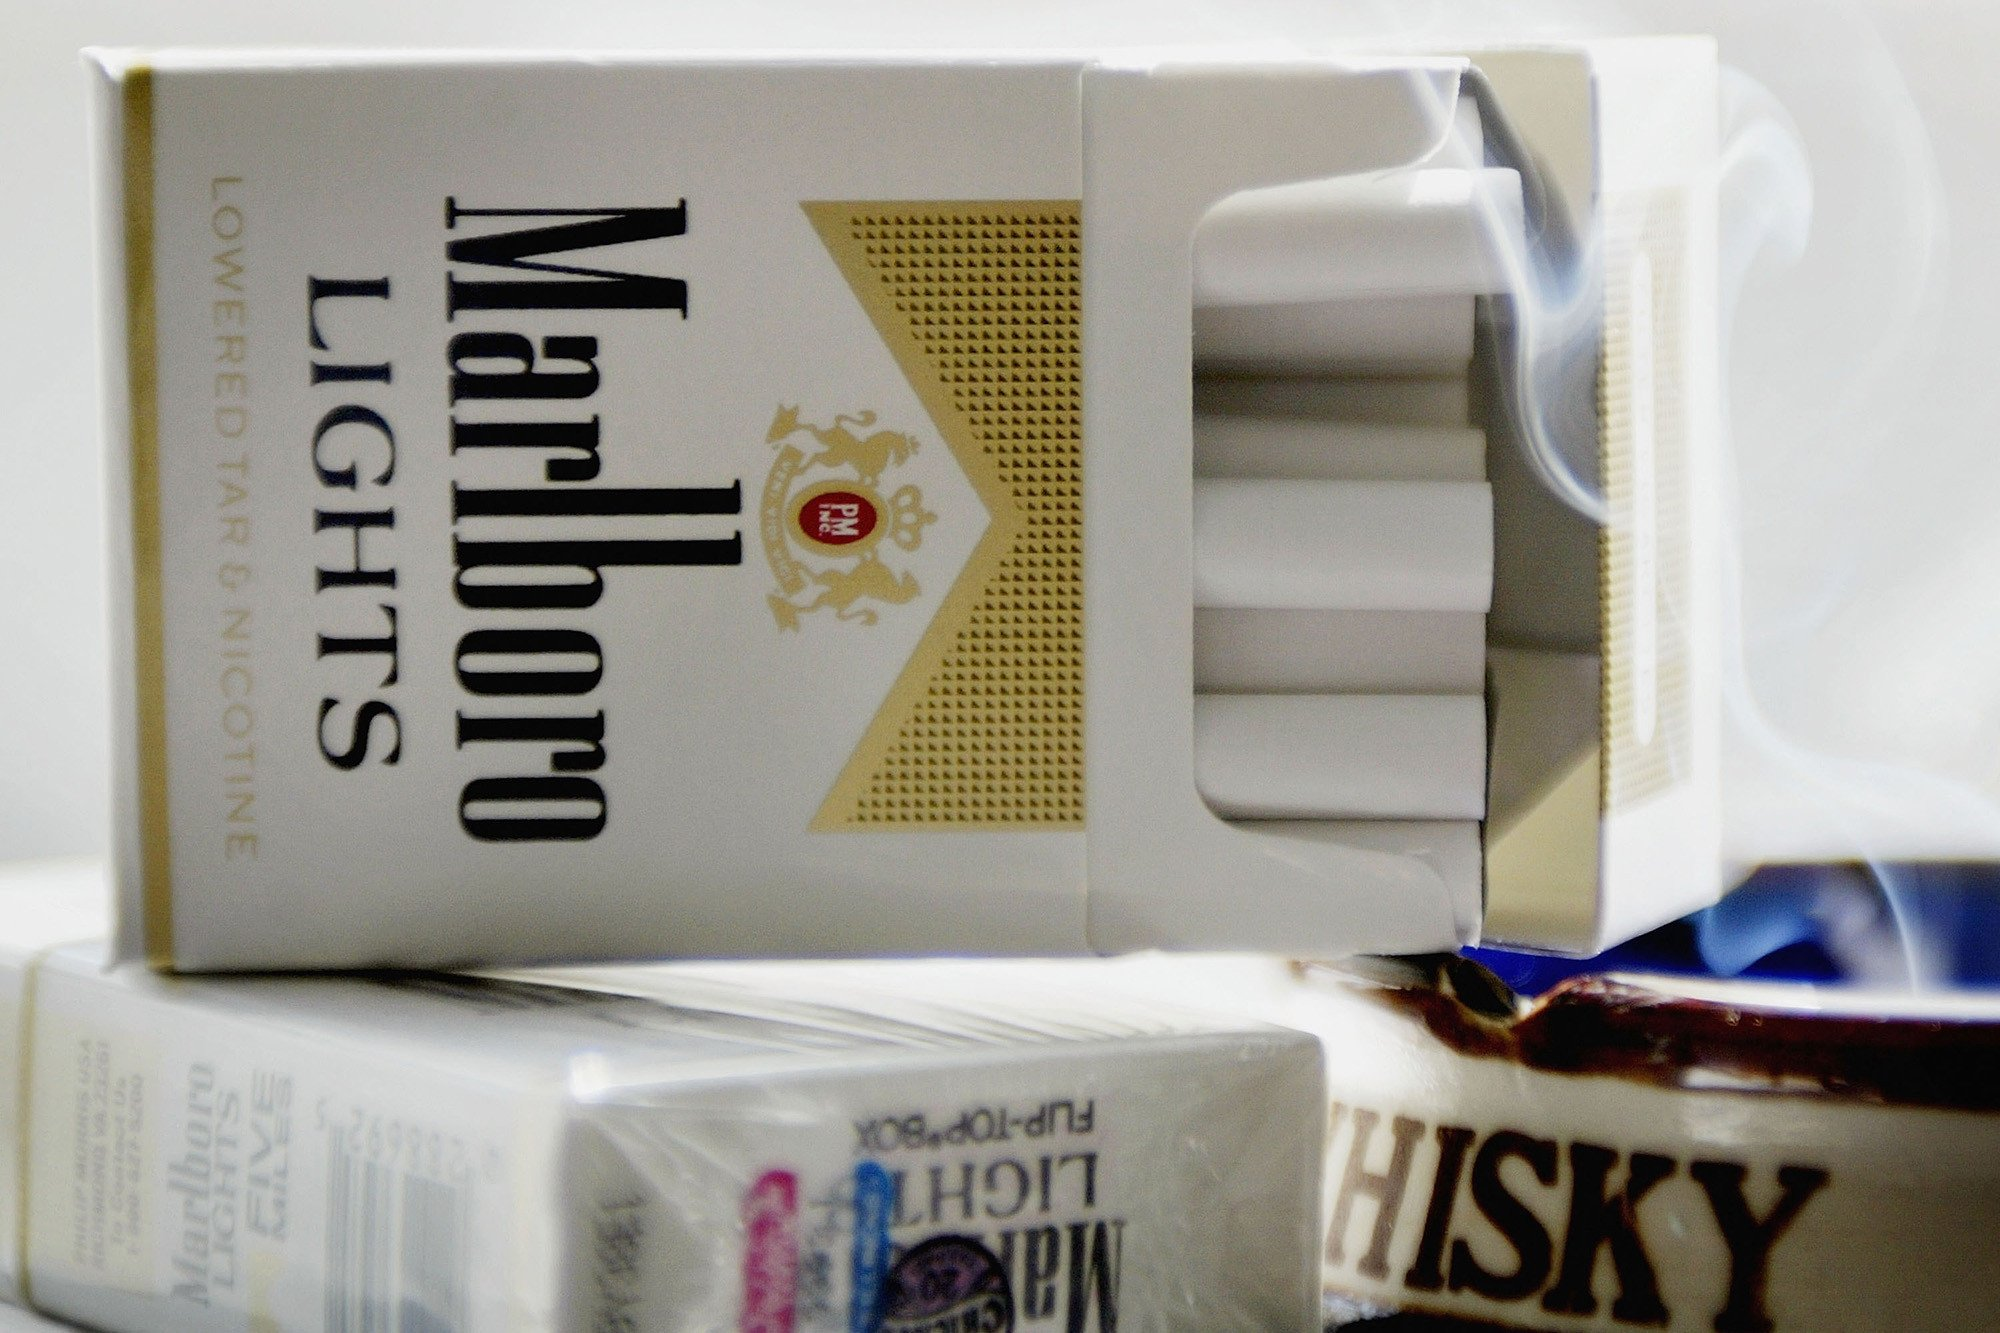 Philip Morris says it's quitting cigarettes